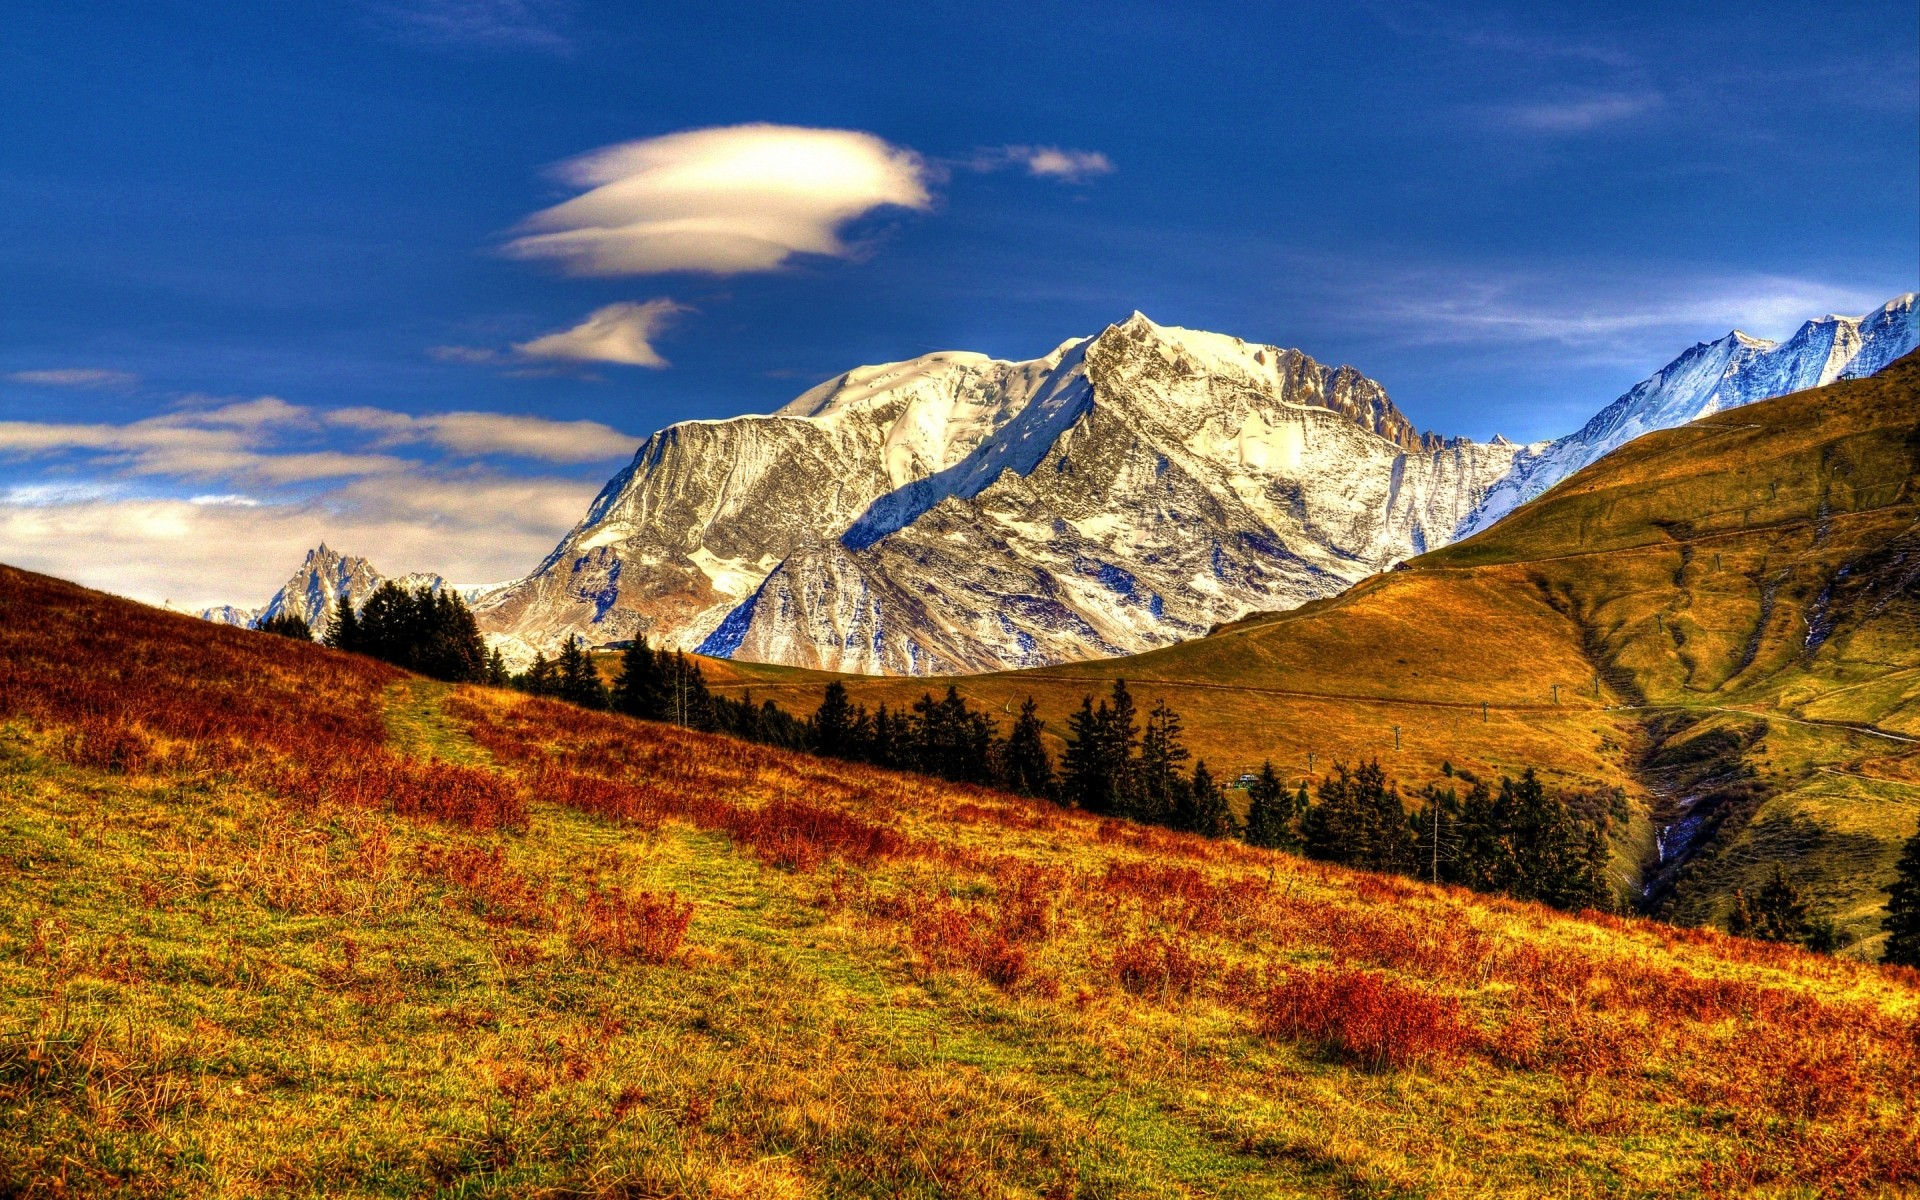 landscapes mountain landscape nature sky travel outdoors scenic mountain peak snow rock valley hill hdr mountains